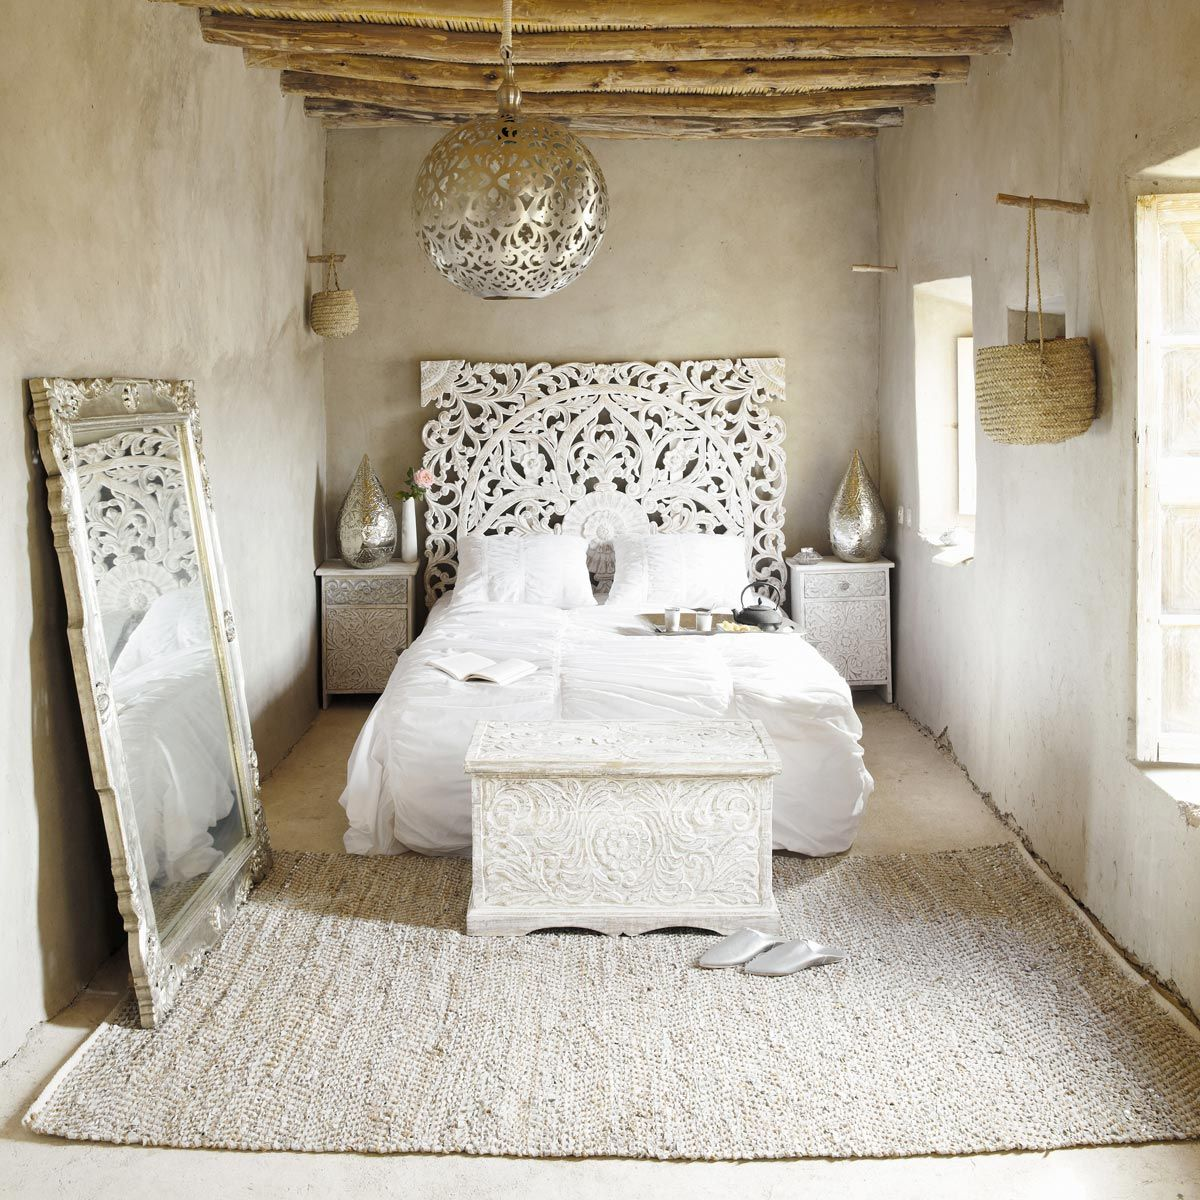 Scandinavian White Interiors with an Indian Twist | Bedrooms and ...